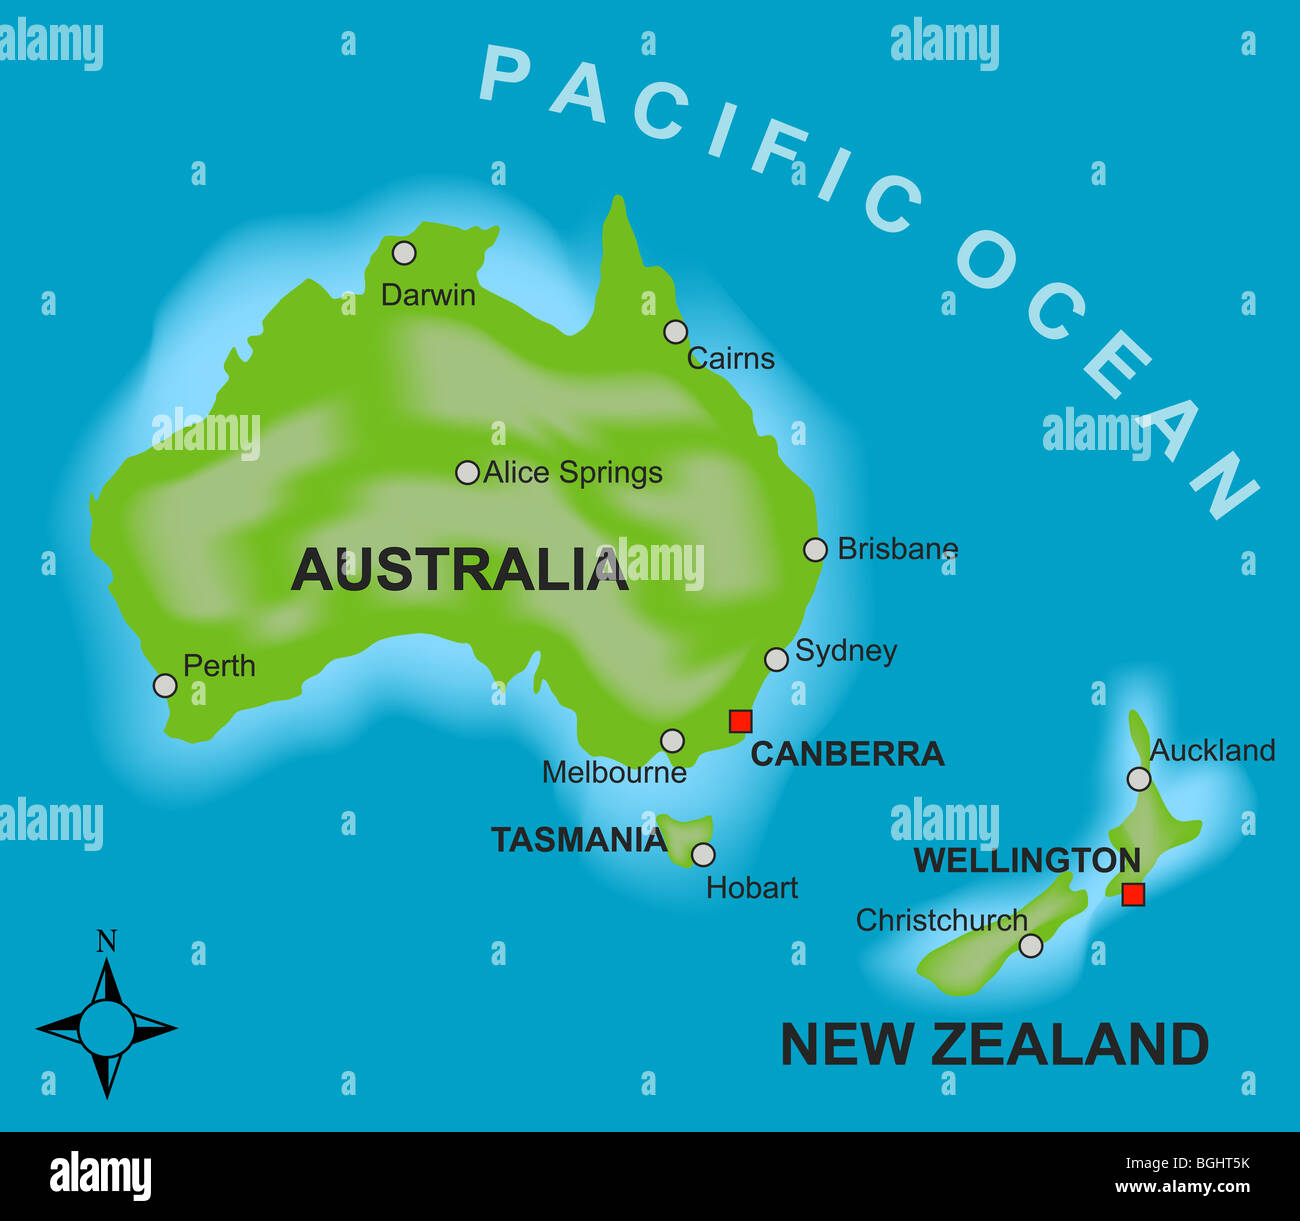 Map Of Australia Tasmania And New Zealand.A Stylized Map Showing The Countries Of Australia And New Zealand